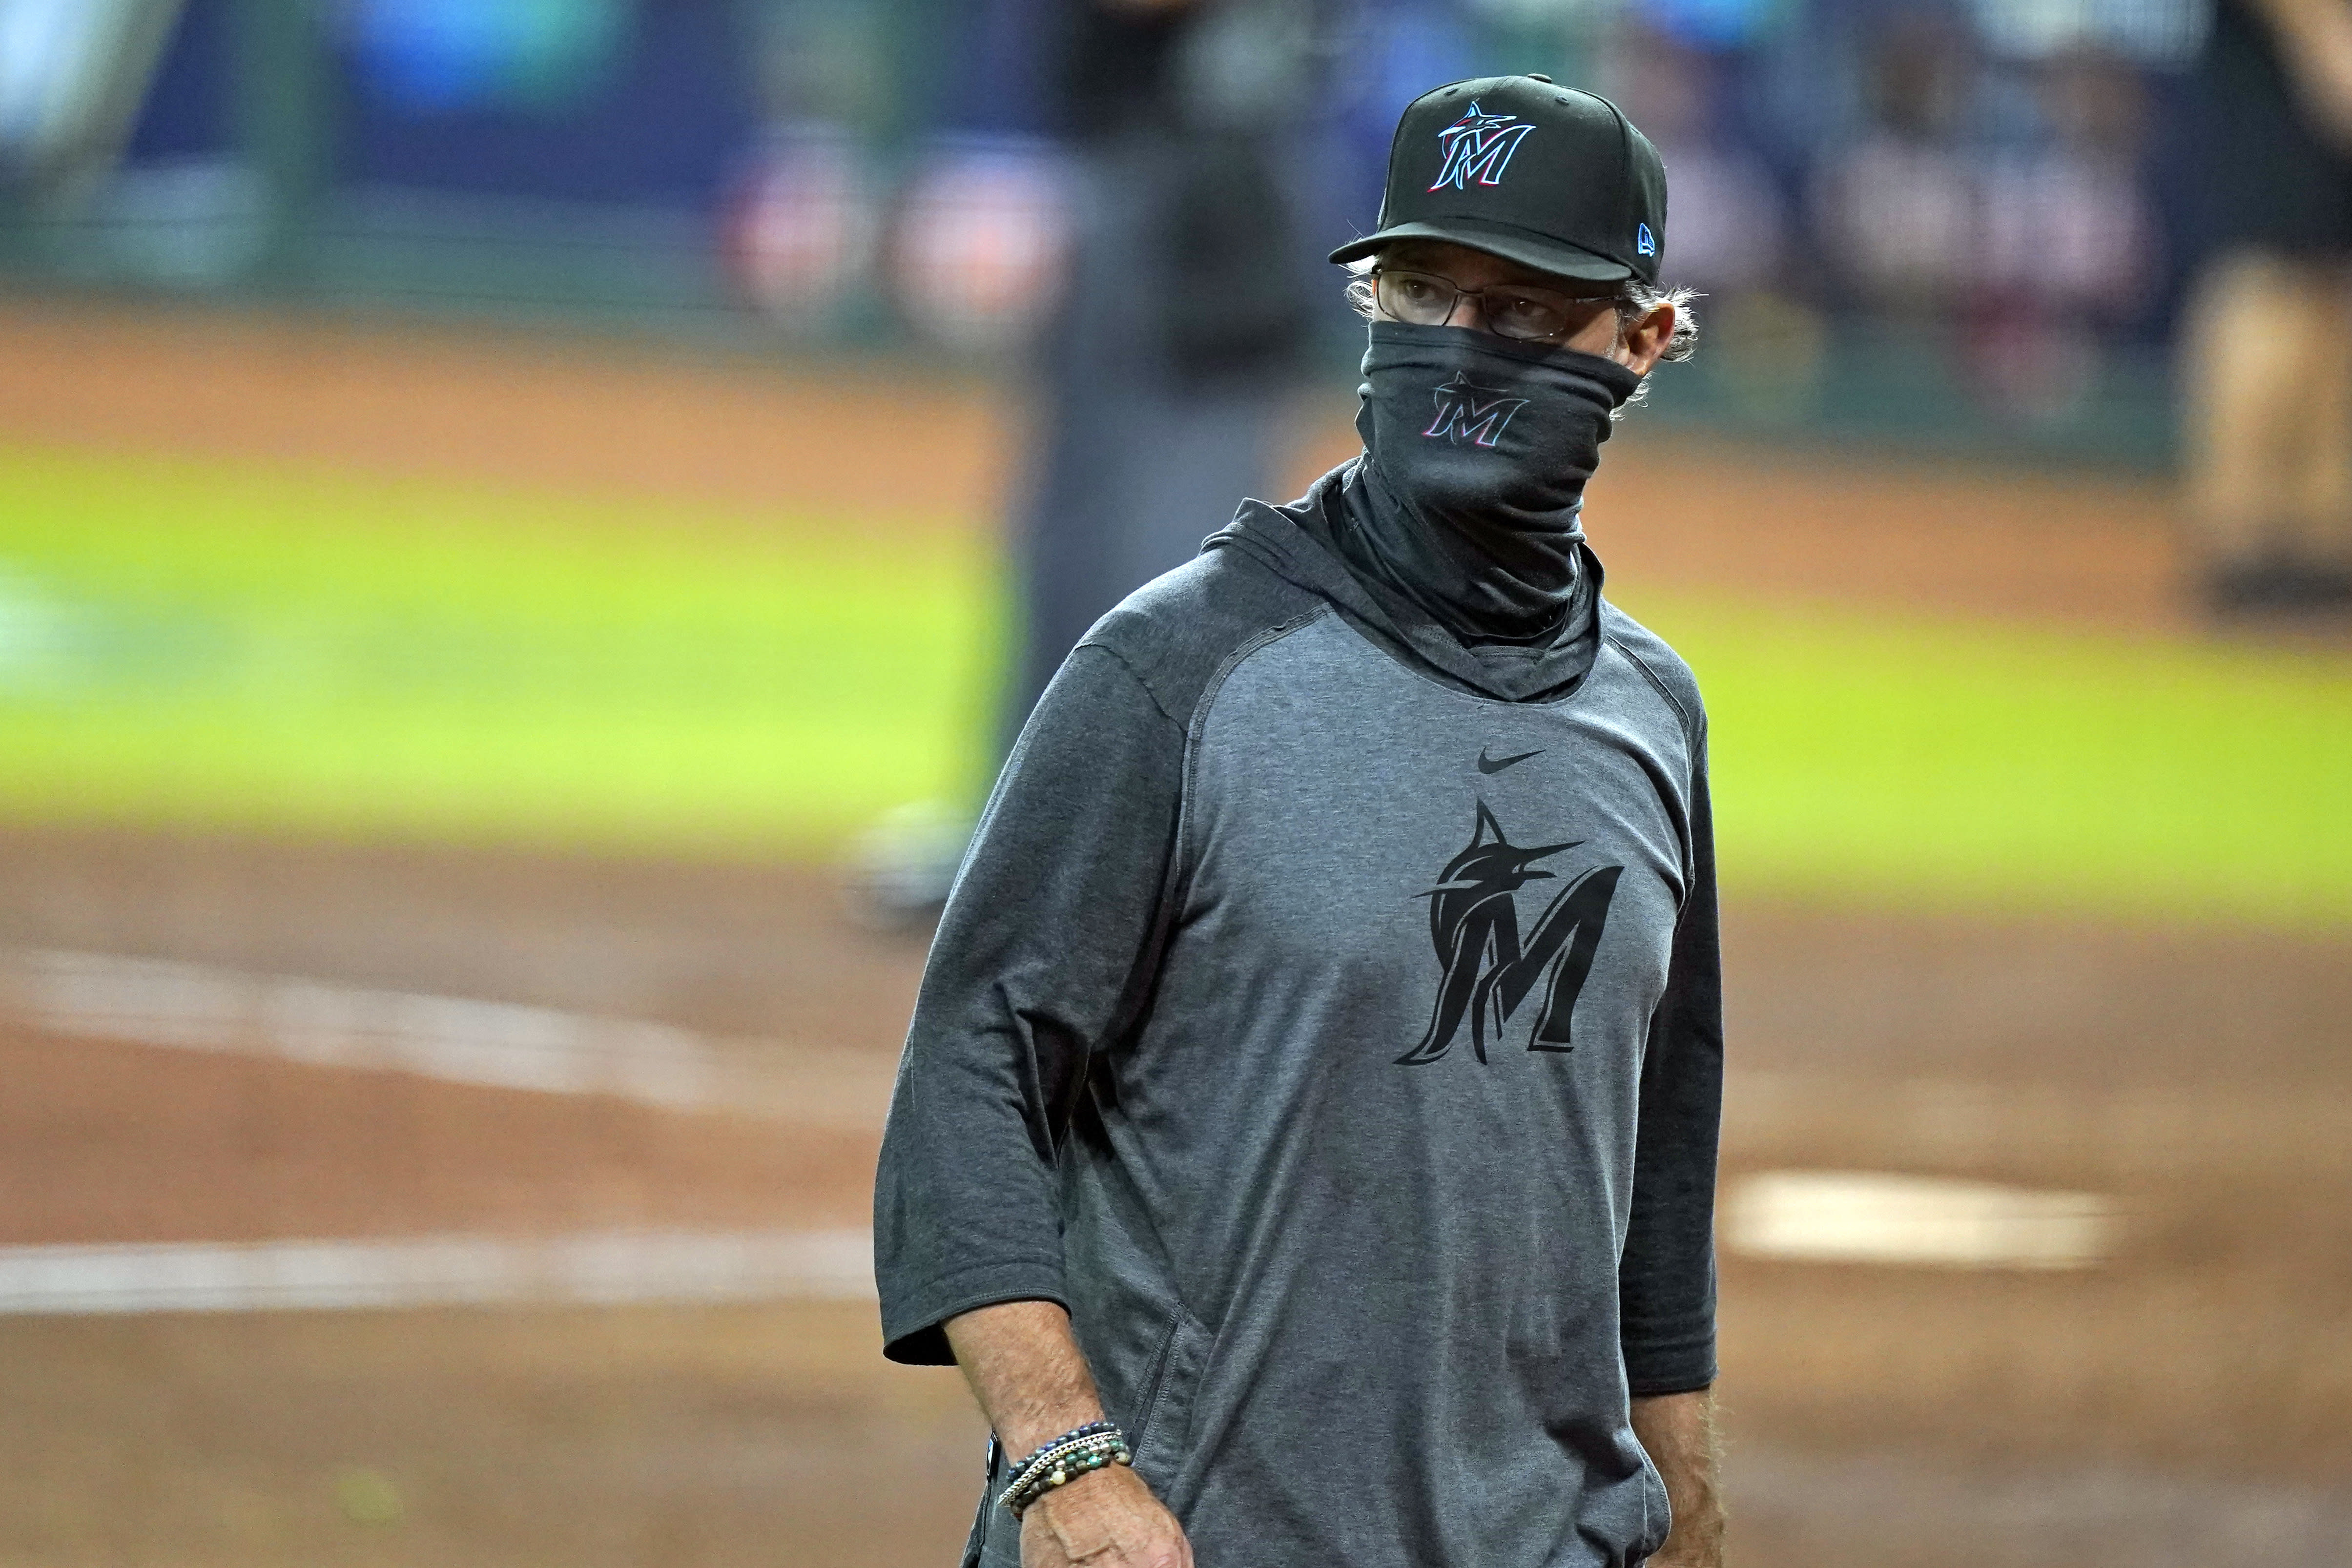 Miami Marlins manager Don Mattingly walks back to the dugout after a pitching change in the fifth inning in Game 3 of a baseball National League Division Series against the Atlanta Braves, Thursday, Oct. 8, 2020, in Houston. (AP Photo/David J. Phillip)